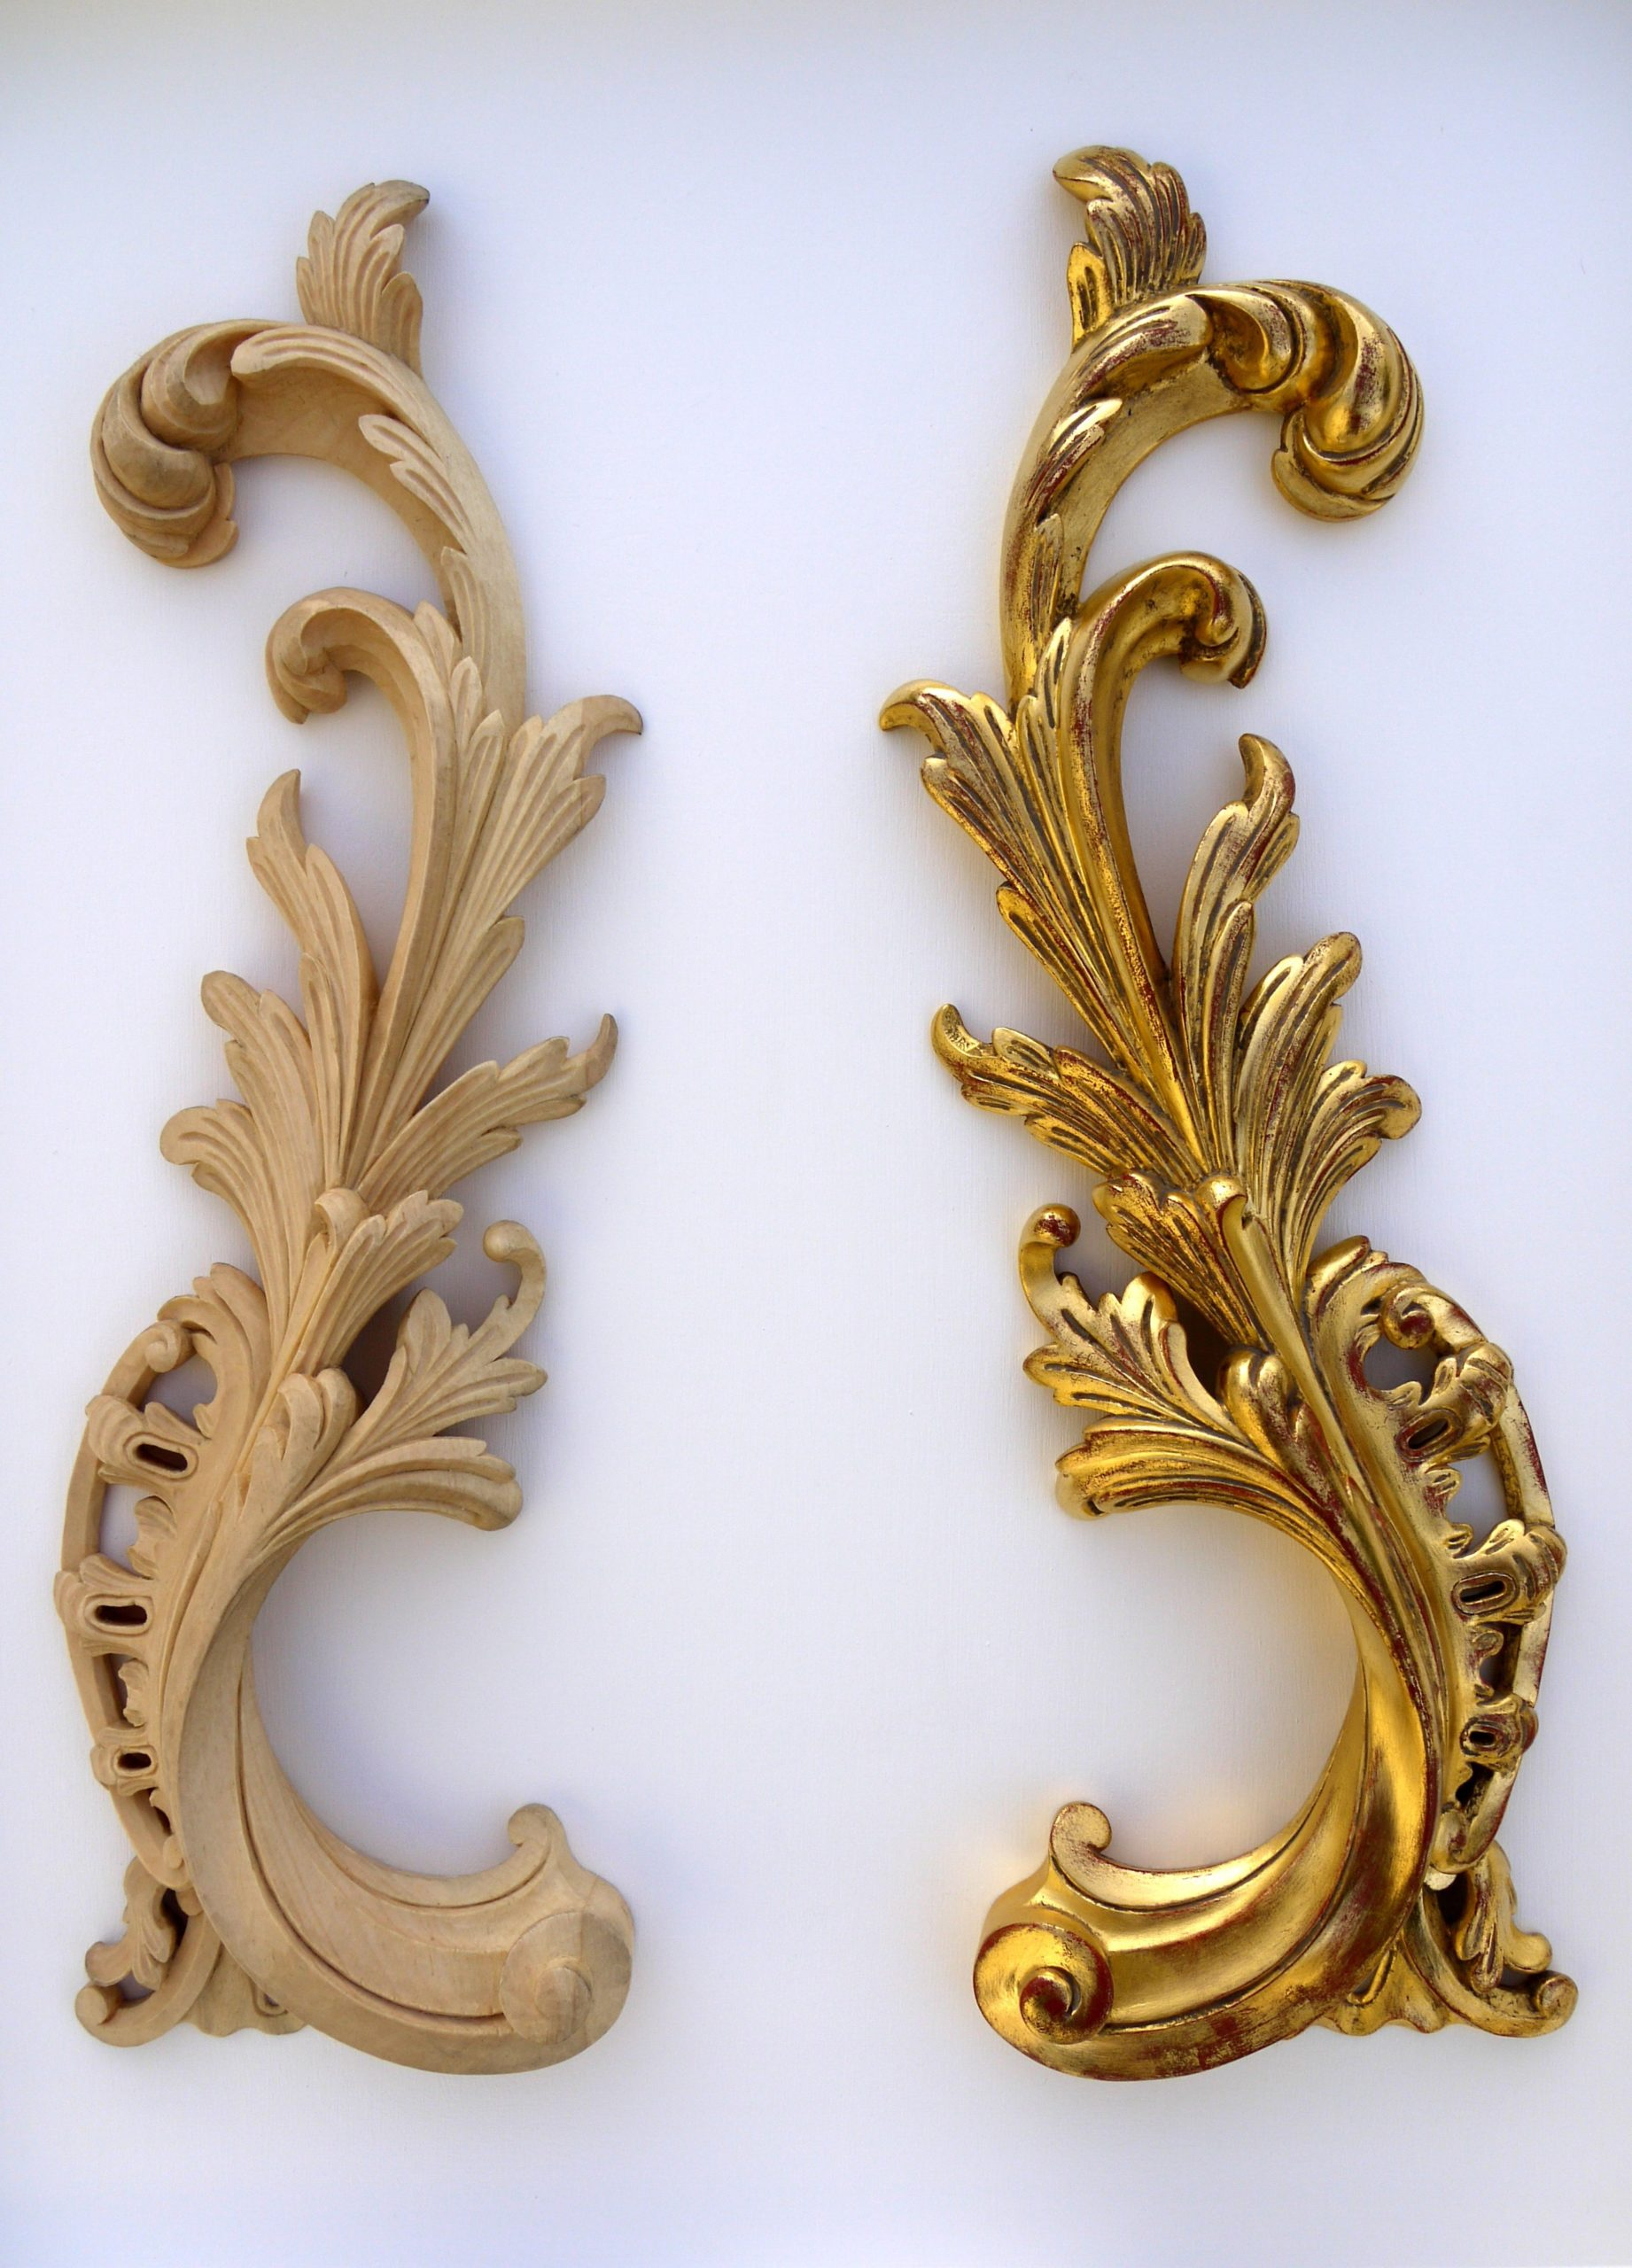 Rococo Carved Amp Gilded Scrolls Wood Carvers And Gilders